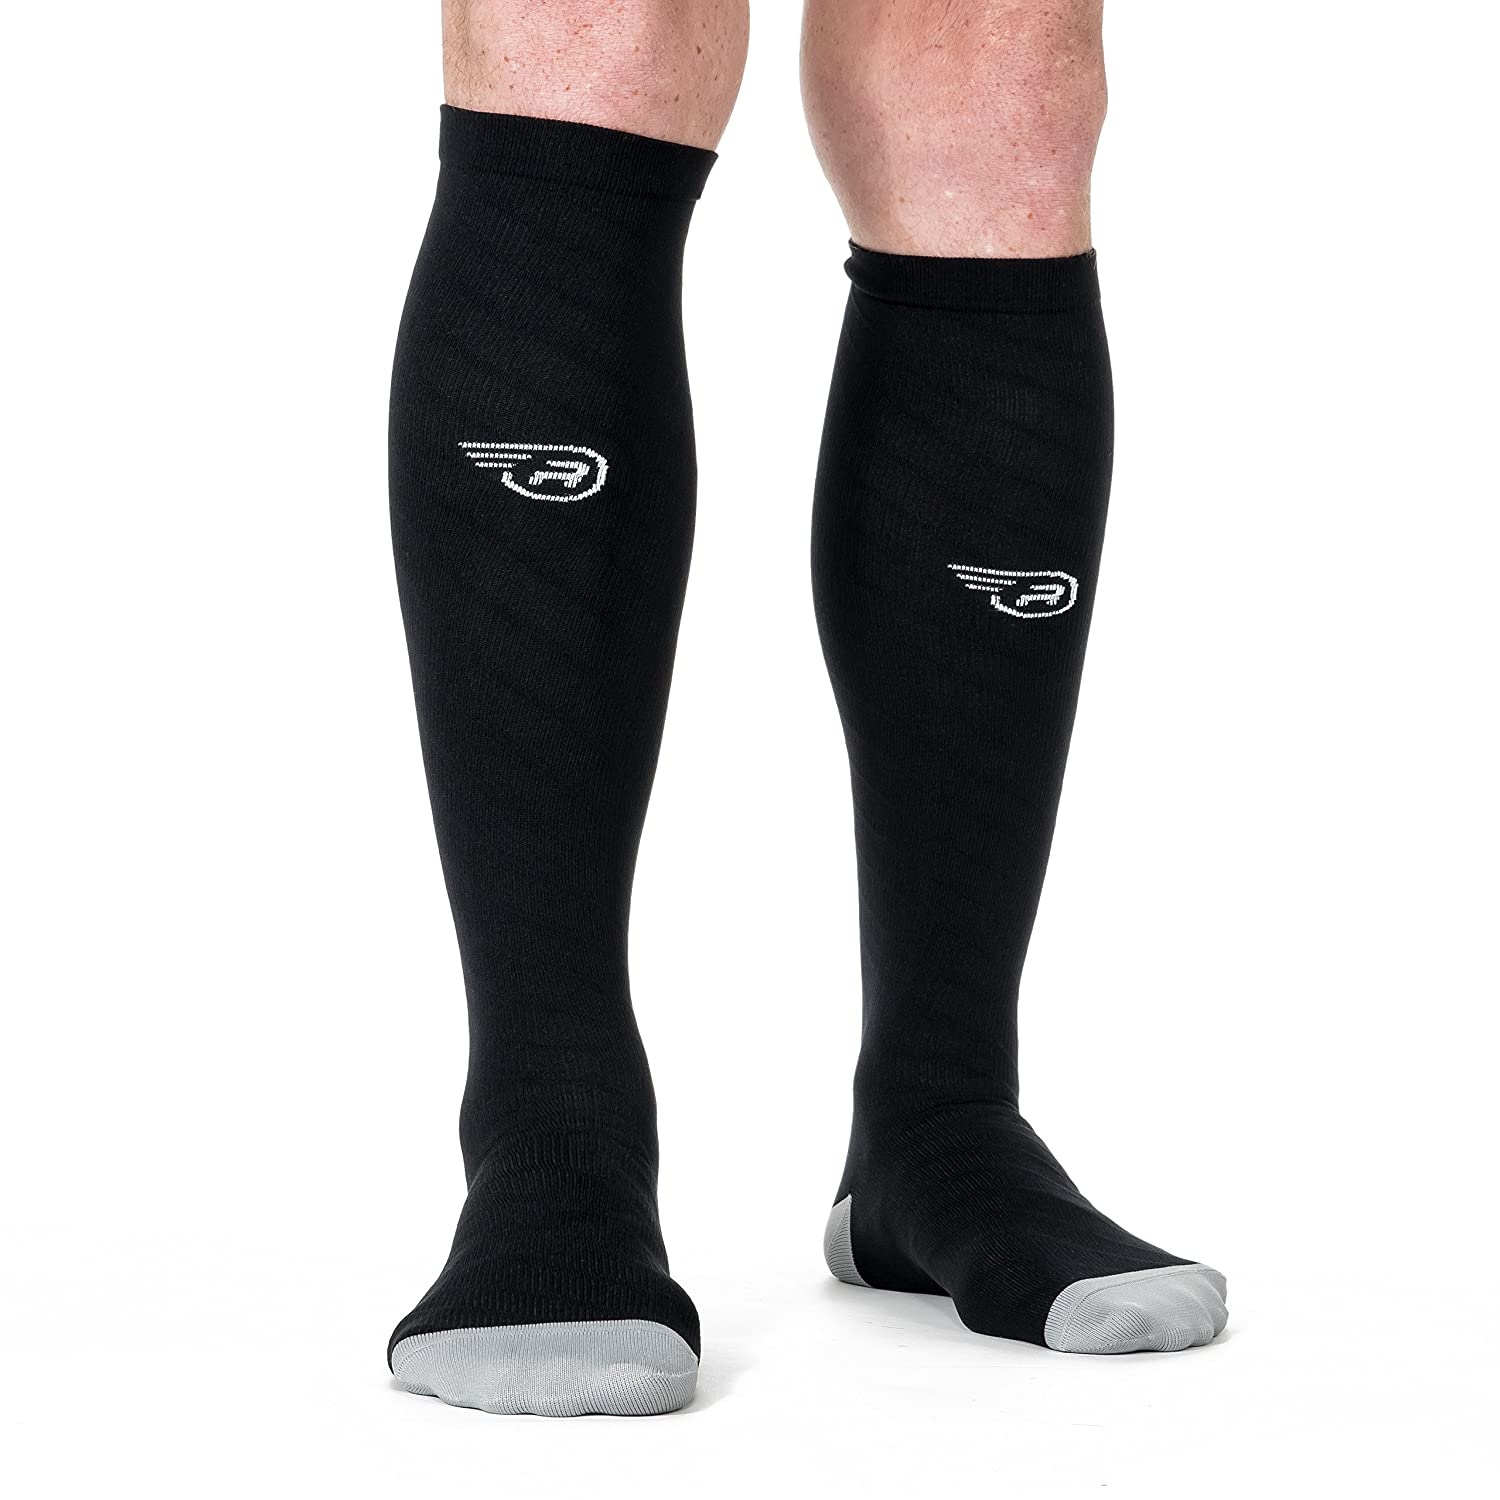 066c7b189772 Amazon.com: Compression Socks – Graduated Comfort Fit (Black S/M: Clothing